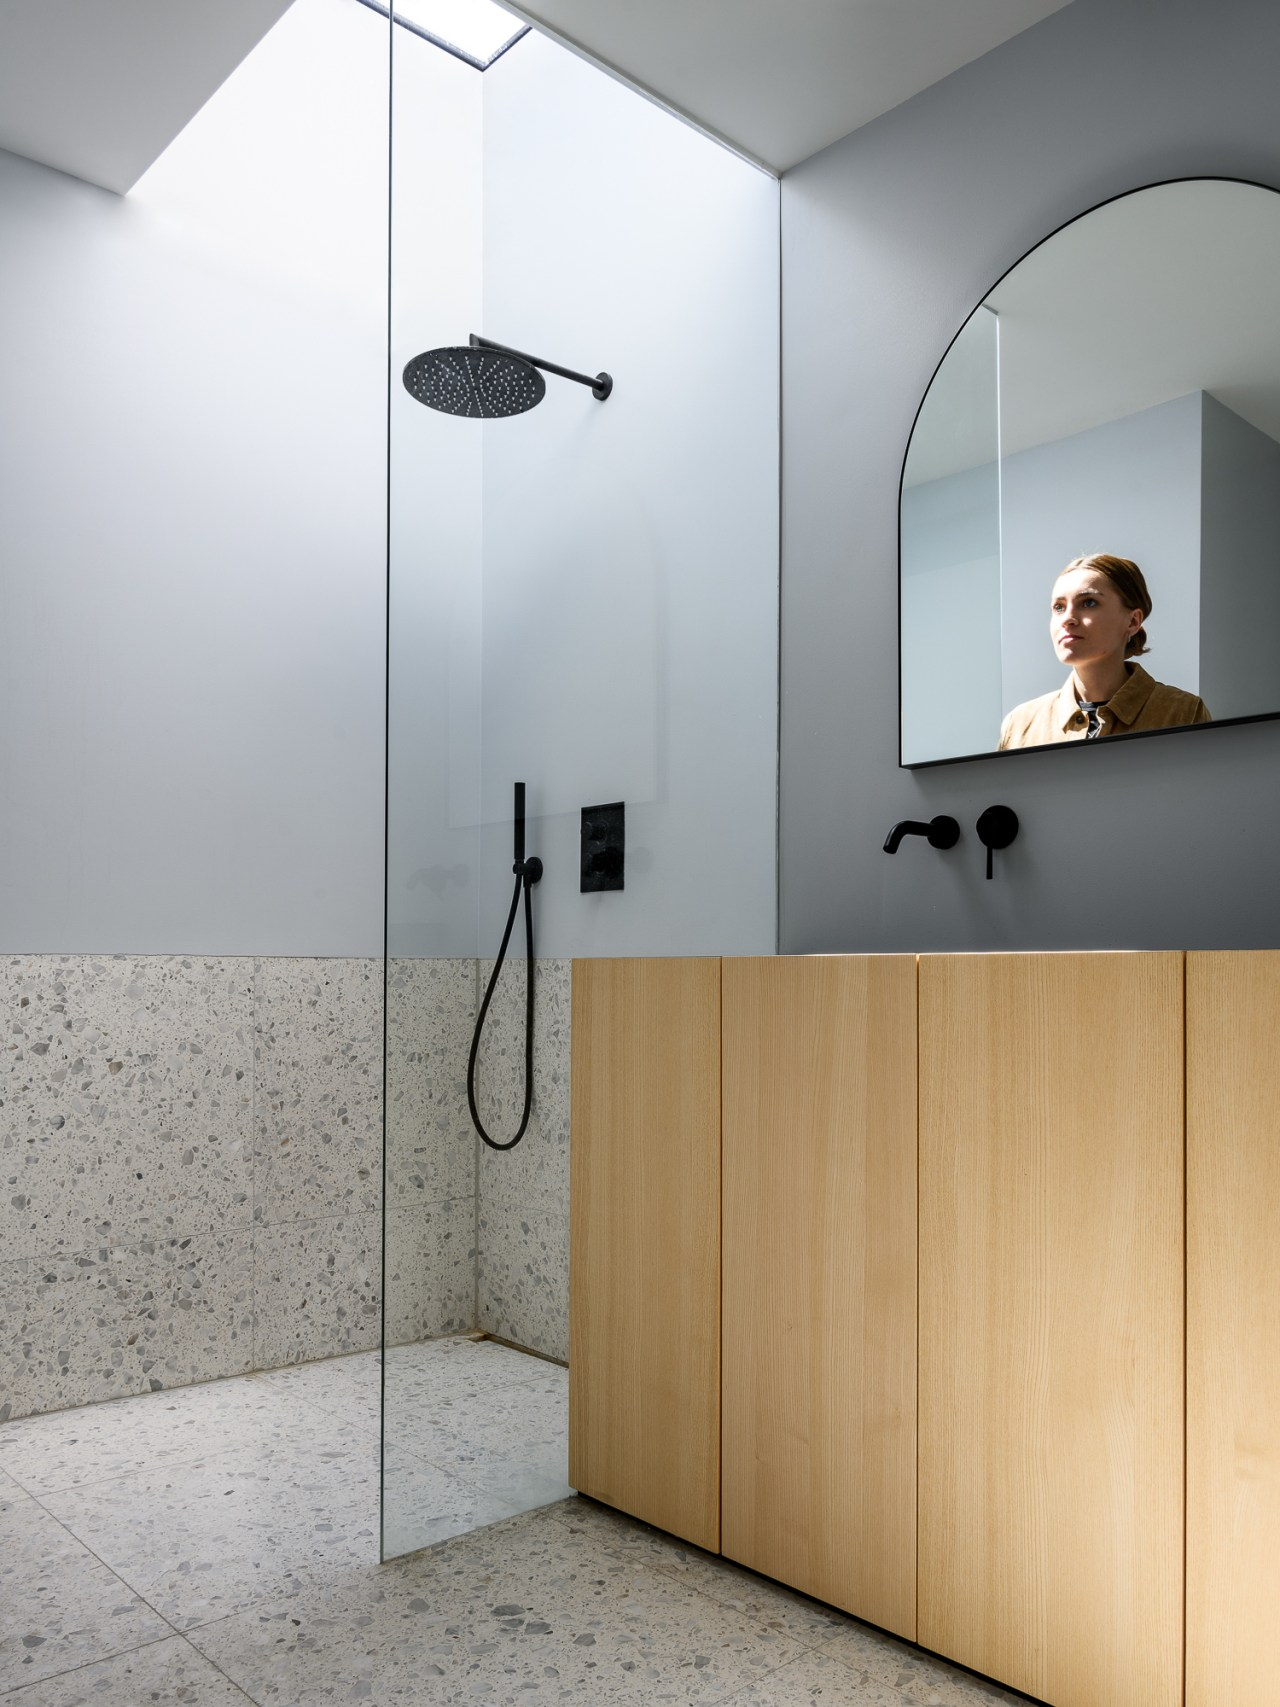 A skylight is positioned directly over the shower